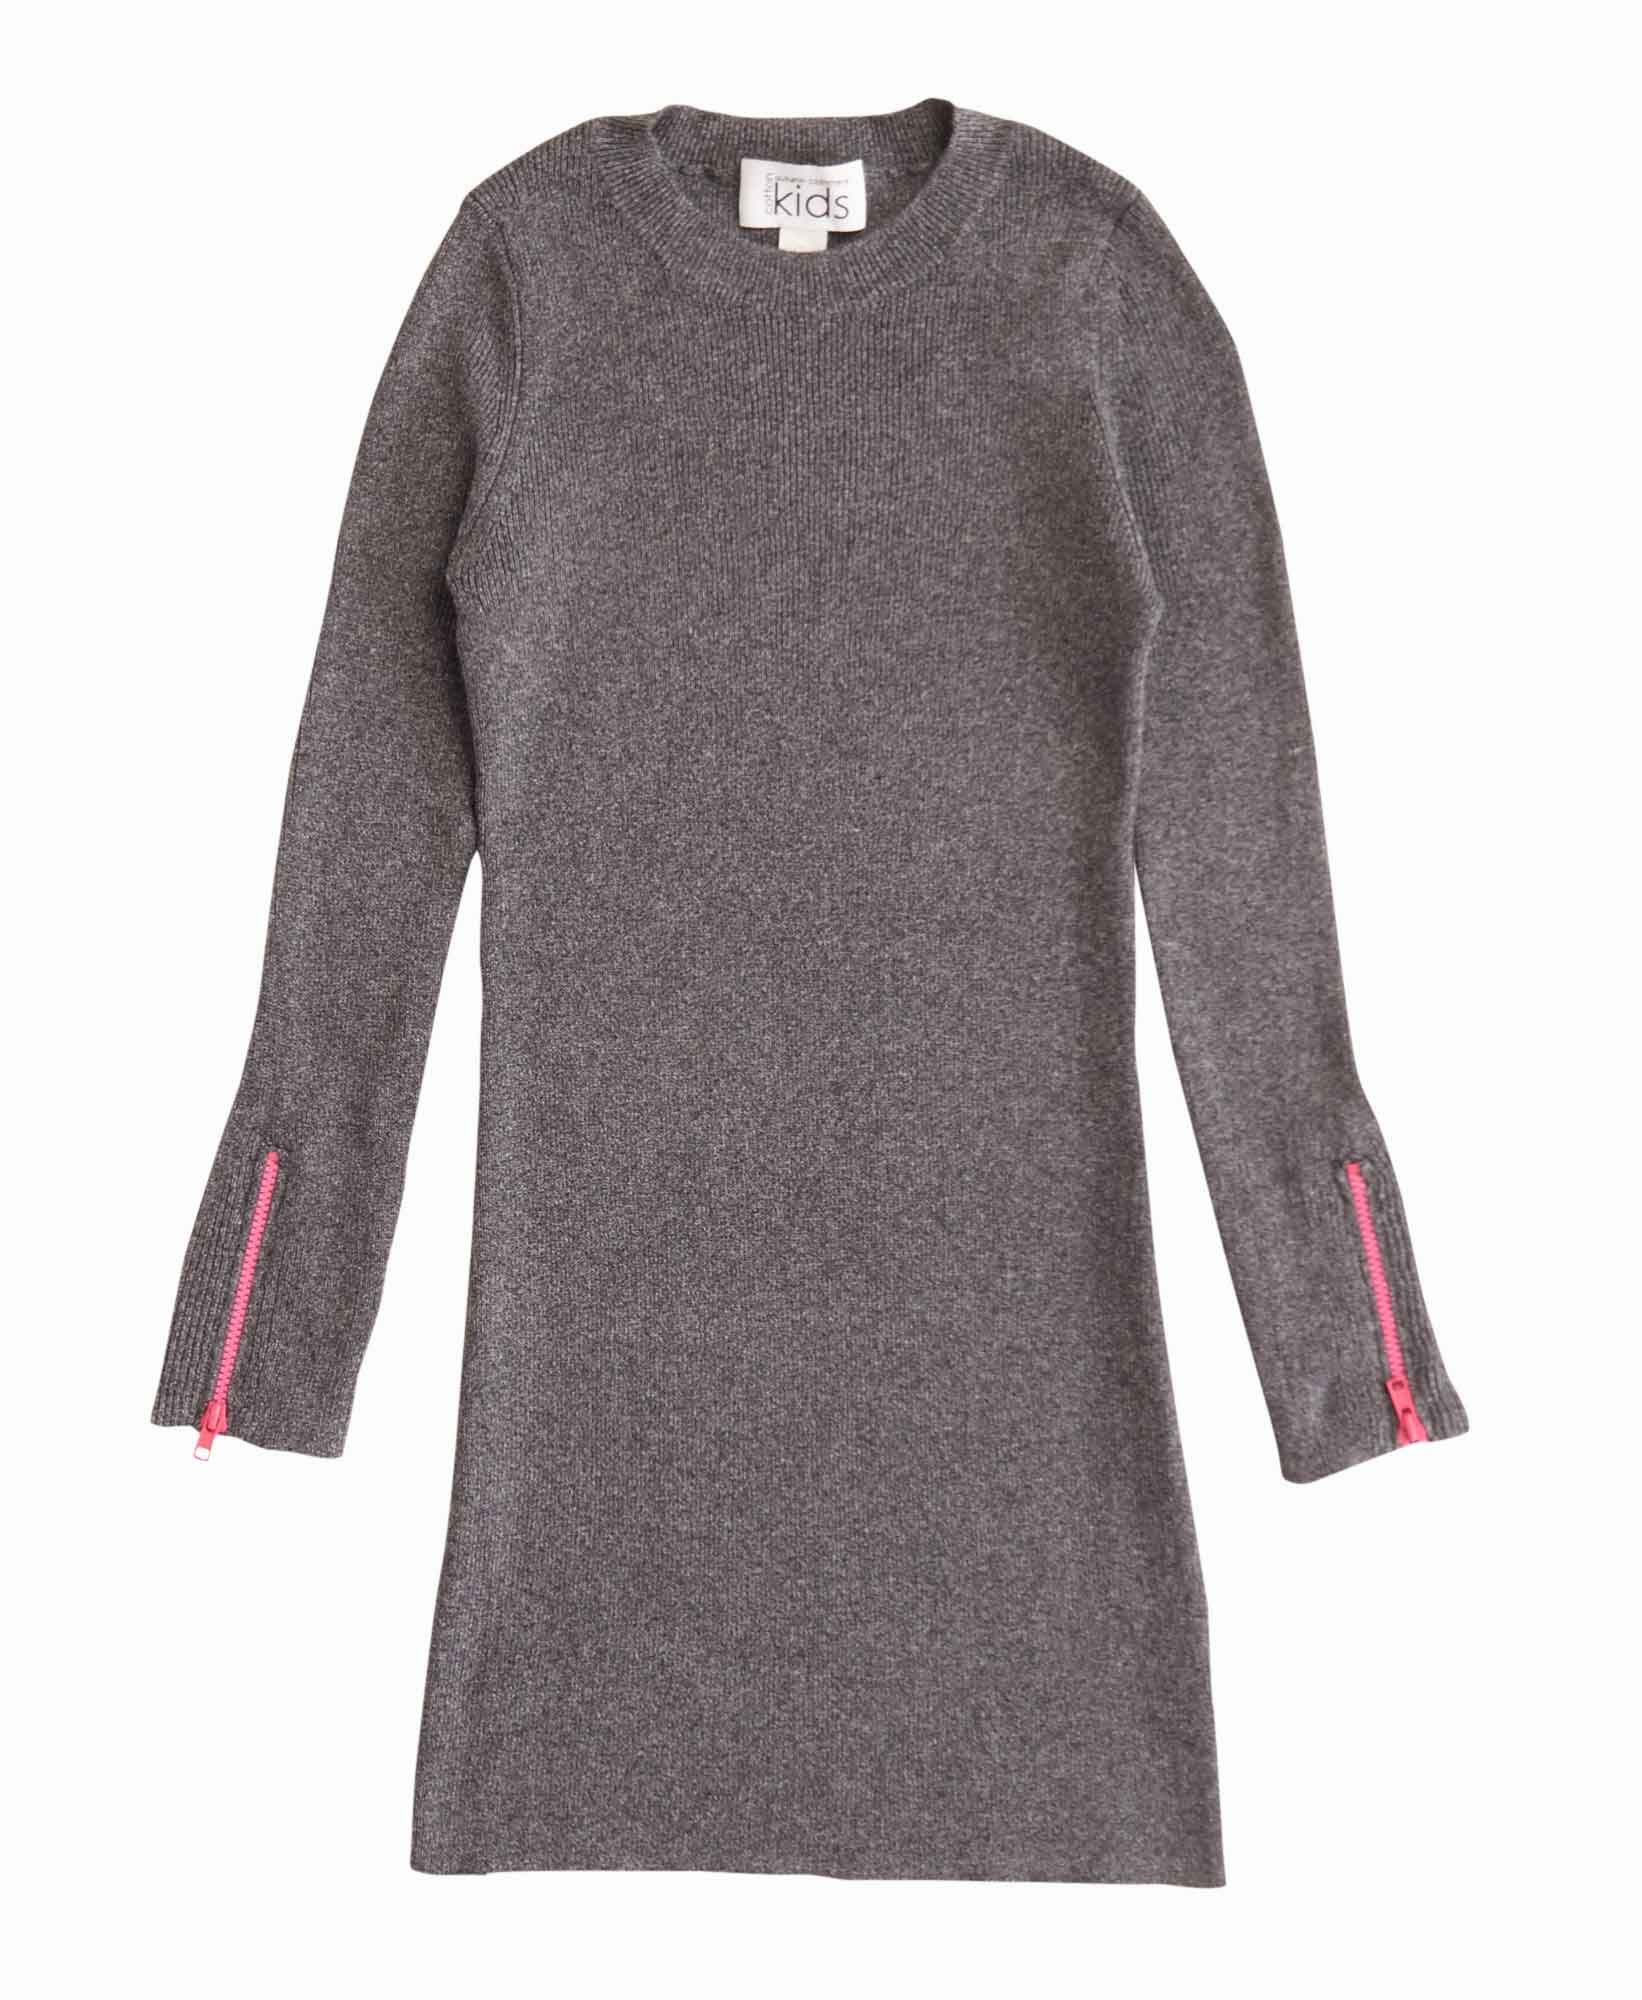 Autumn Cashmere Ribbed Dress with Neon Zip